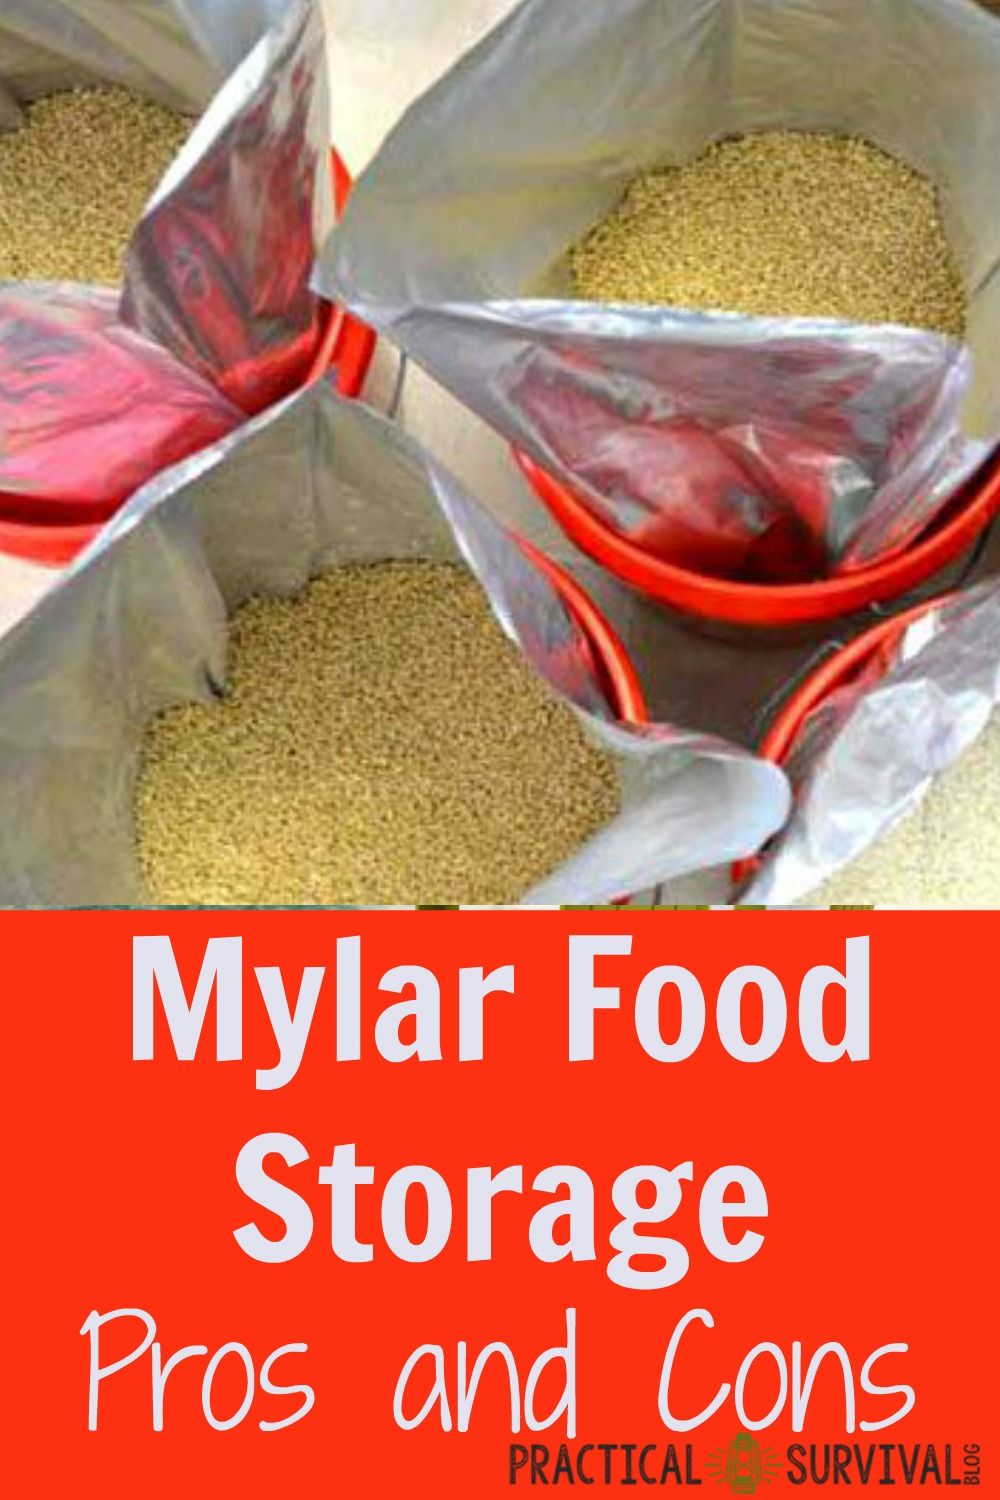 Mylar Food Storage - great help deciding if I should use mylar bags for long term food storage or not. & Pros and Cons of Mylar Storage Bags | Long term food storage Food ...